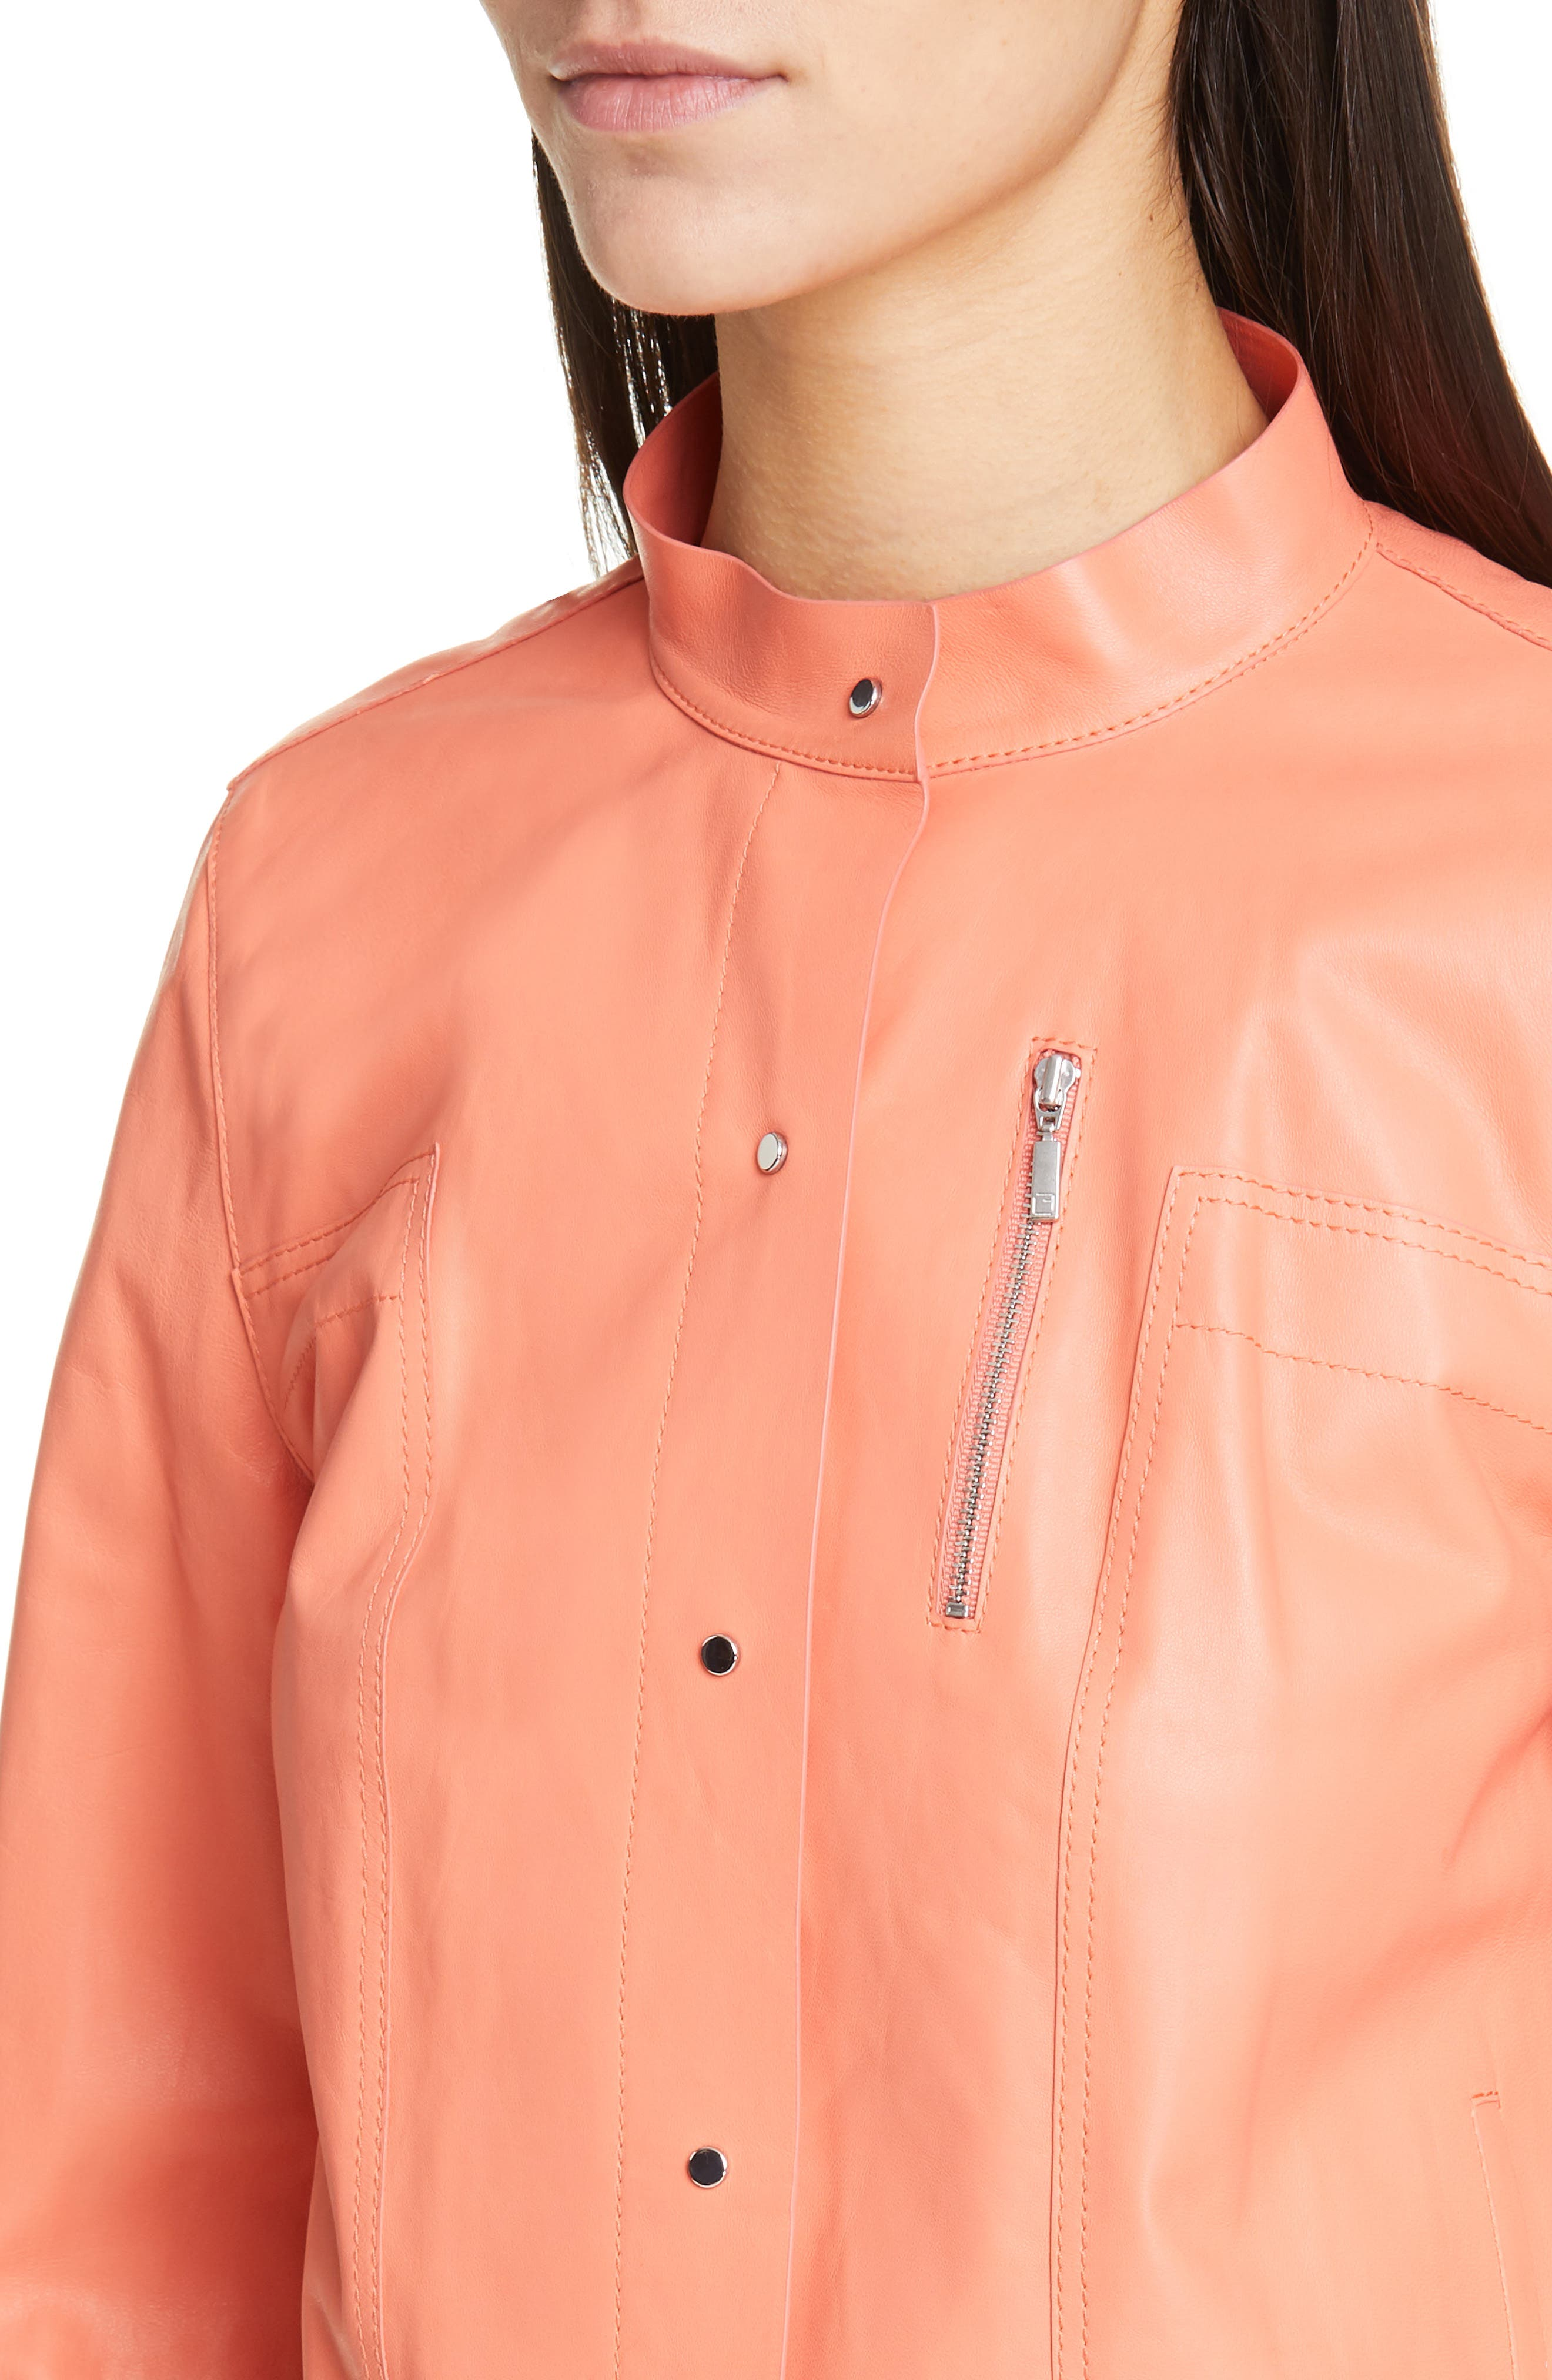 LAFAYETTE 148 NEW YORK, Galicia Leather Jacket, Alternate thumbnail 4, color, PEACH ROSE